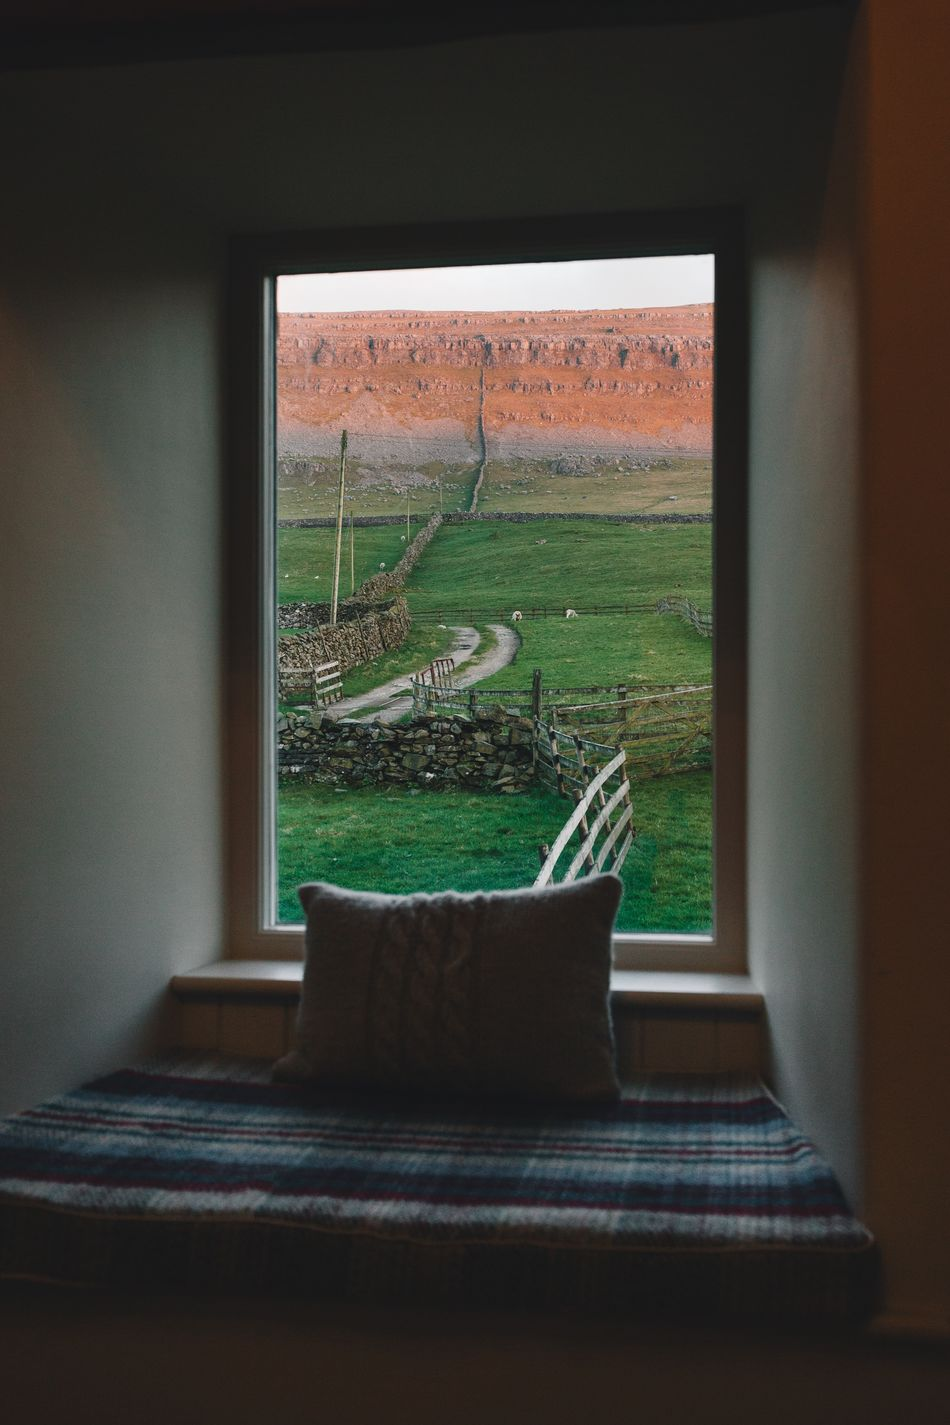 Views Indoors  Window Farm Quiet Home Interior Green Nature Rural Relaxing No People Home Interior Architecture Yorkshire Break Weekend Getaway Nature Dale Dales Natural Park Yorkshire Dales Cosy Home Cosy Sitting